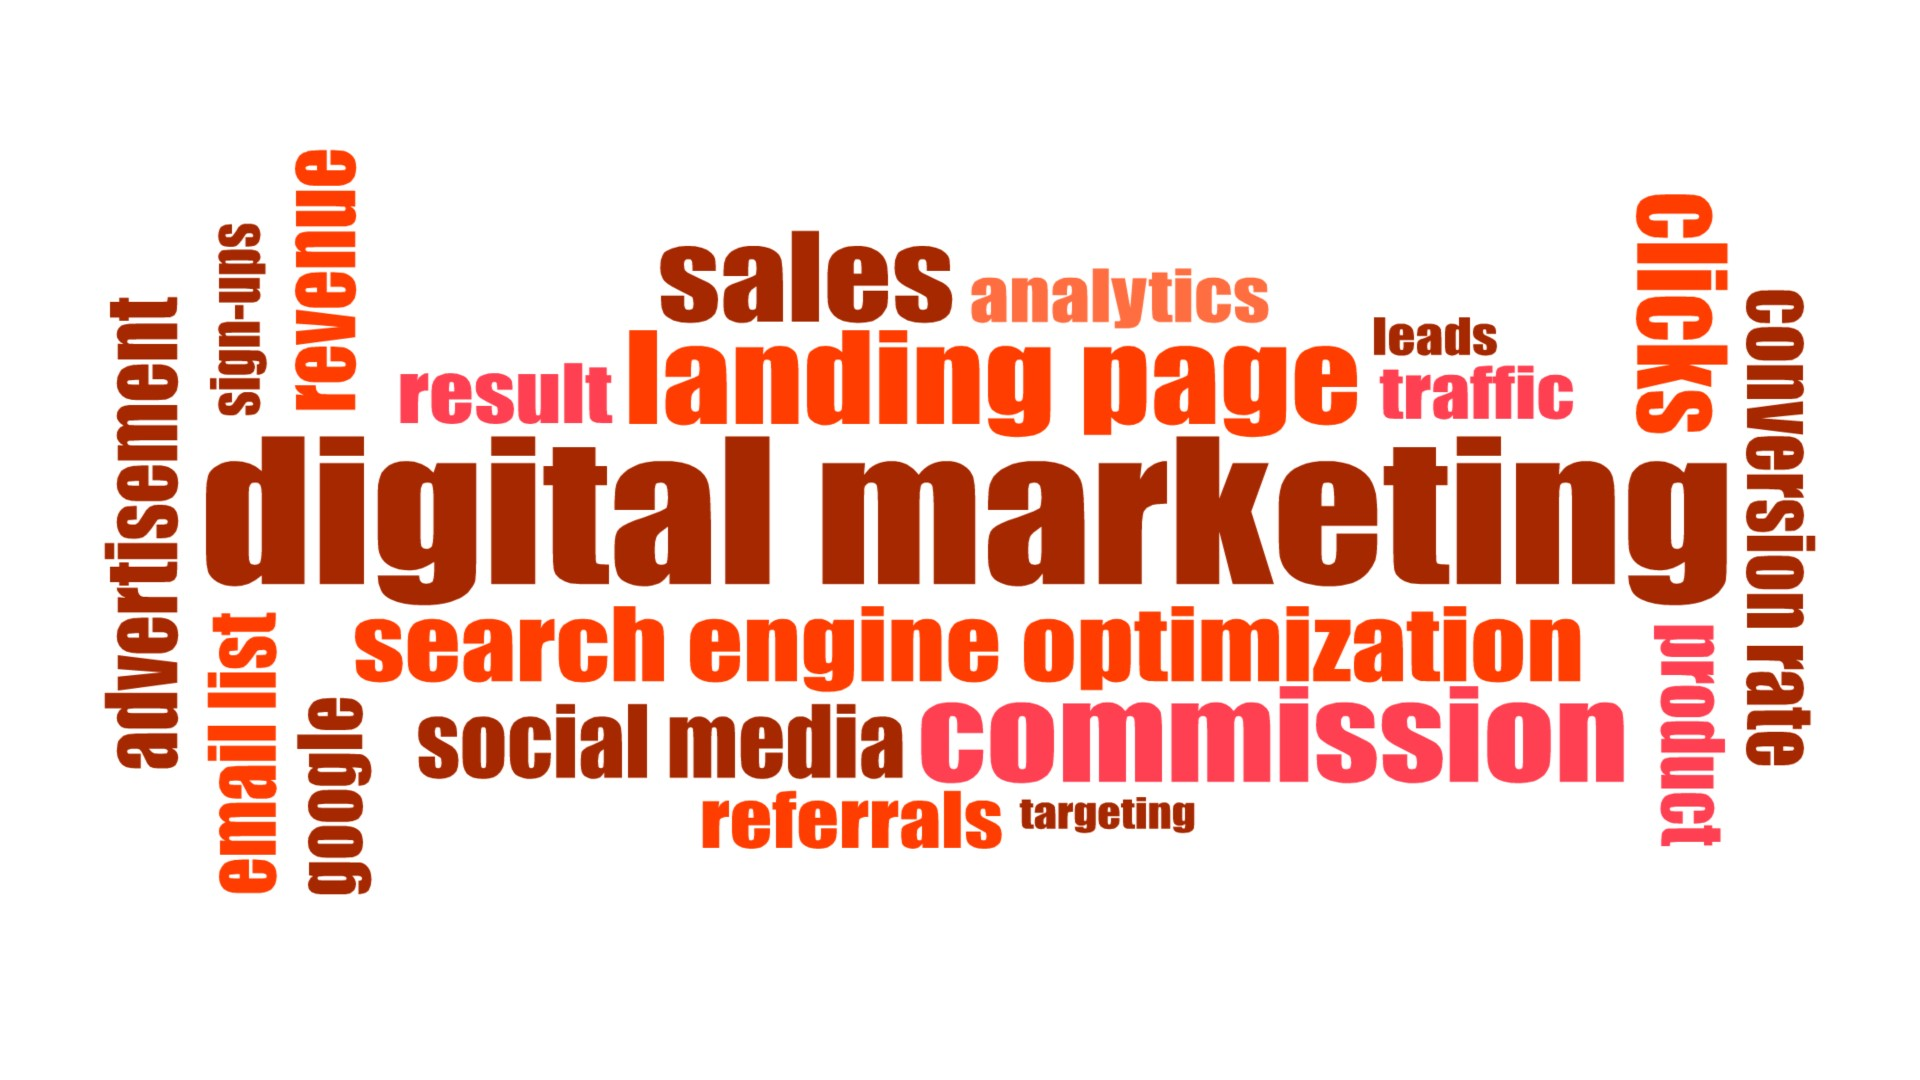 Digital marketing is including a lot of assets.